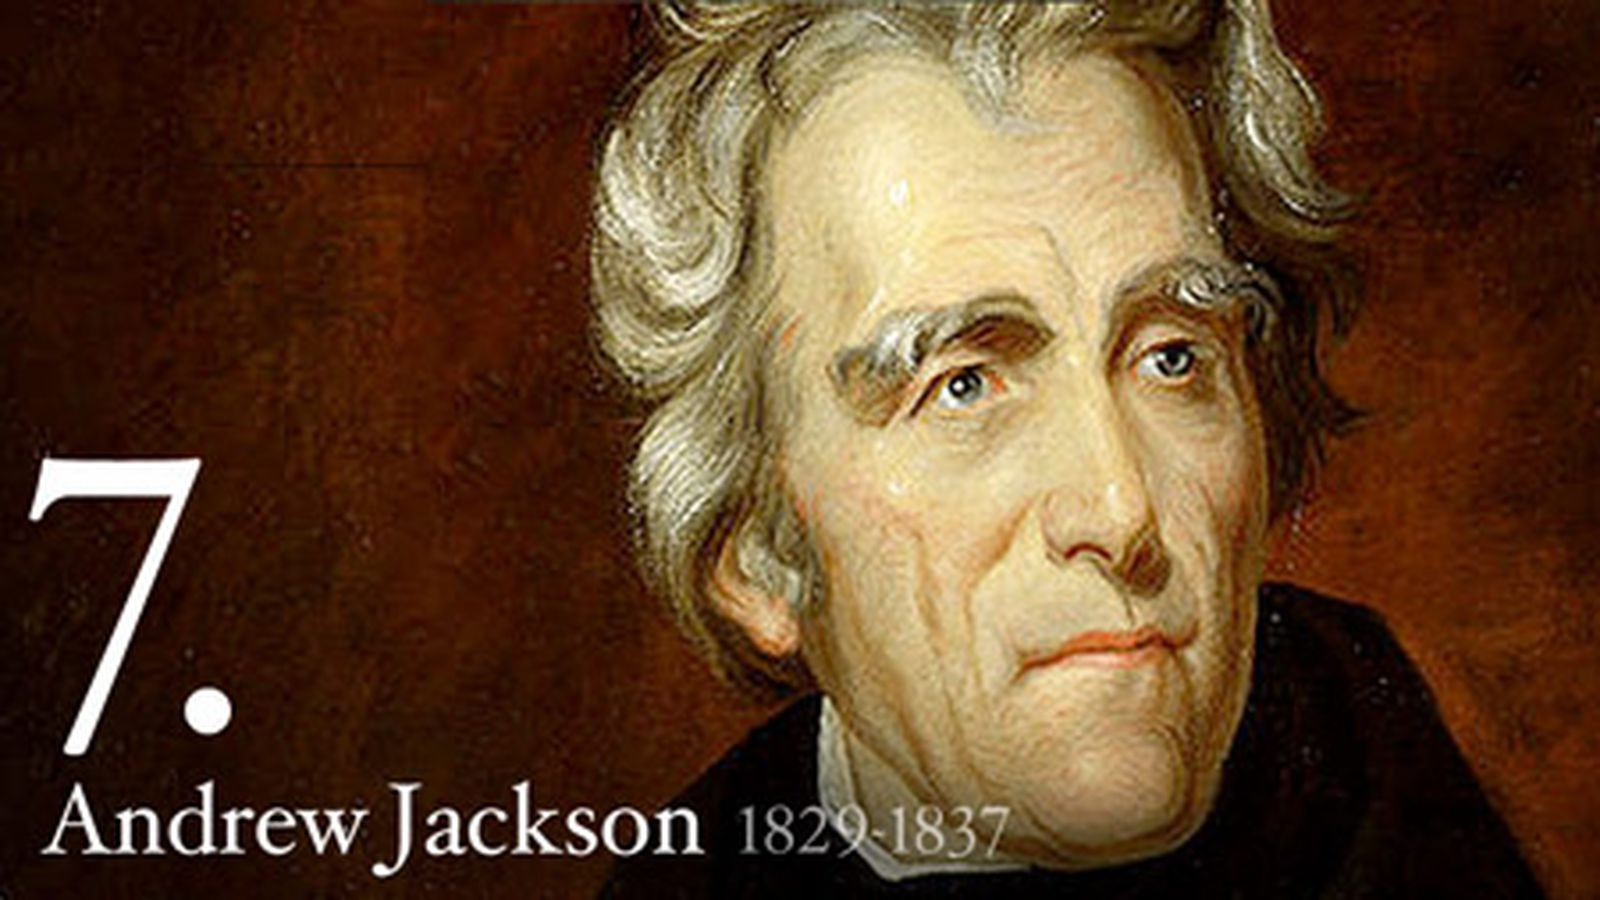 an analysis of the presidency of andrew jackson the 7th american president elected in 1828